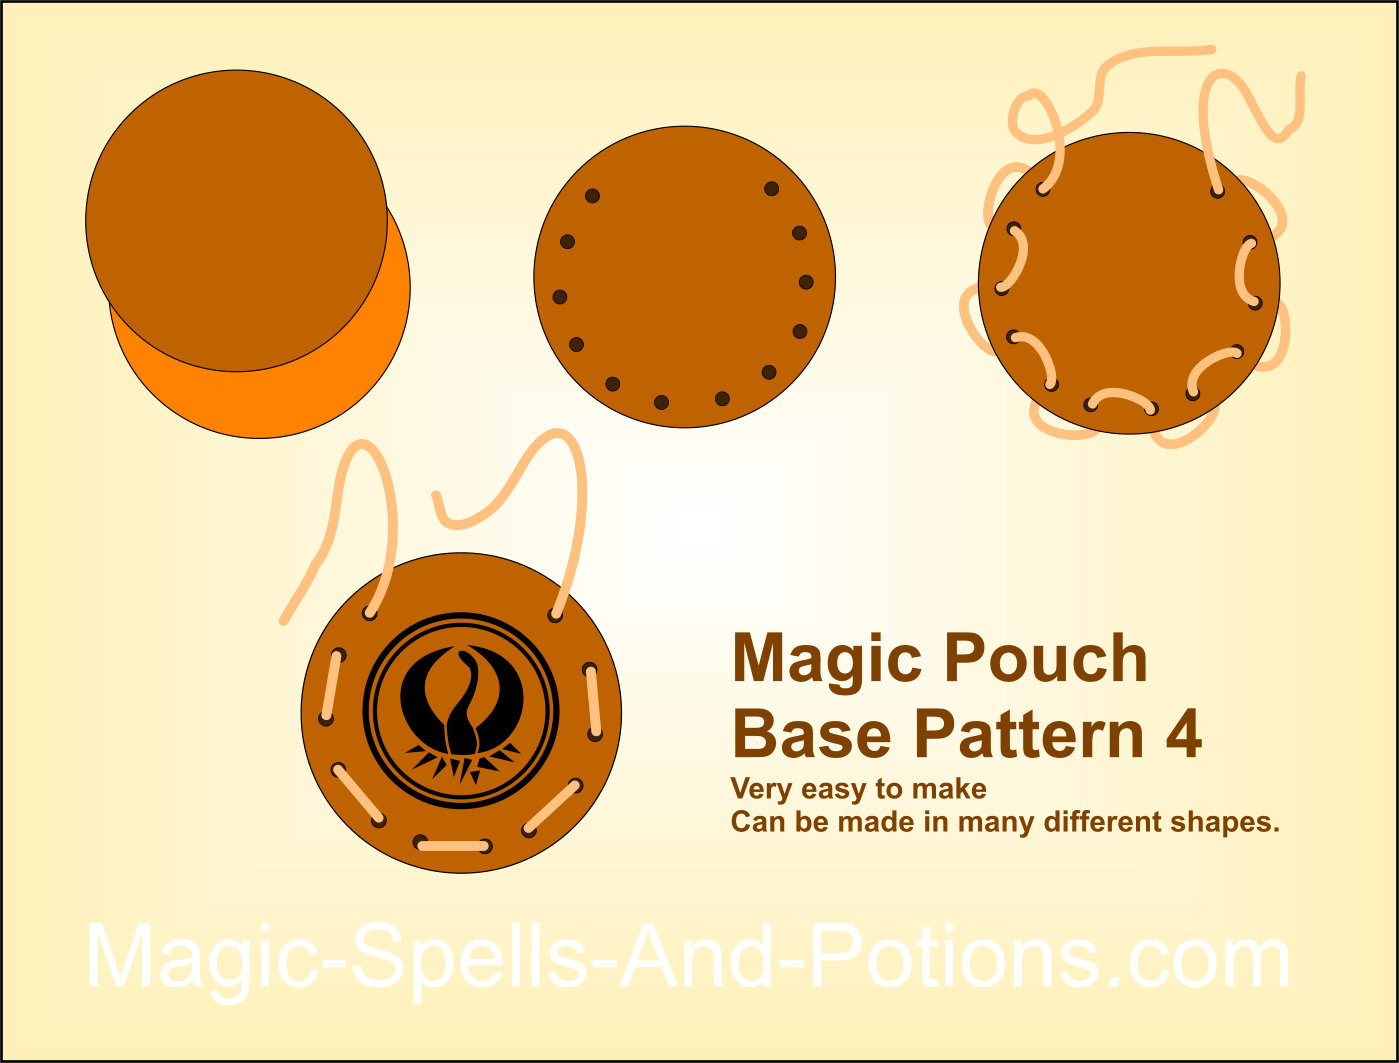 Very easy round/multi-shape pattern for a magic pouch or shaman's purse 4